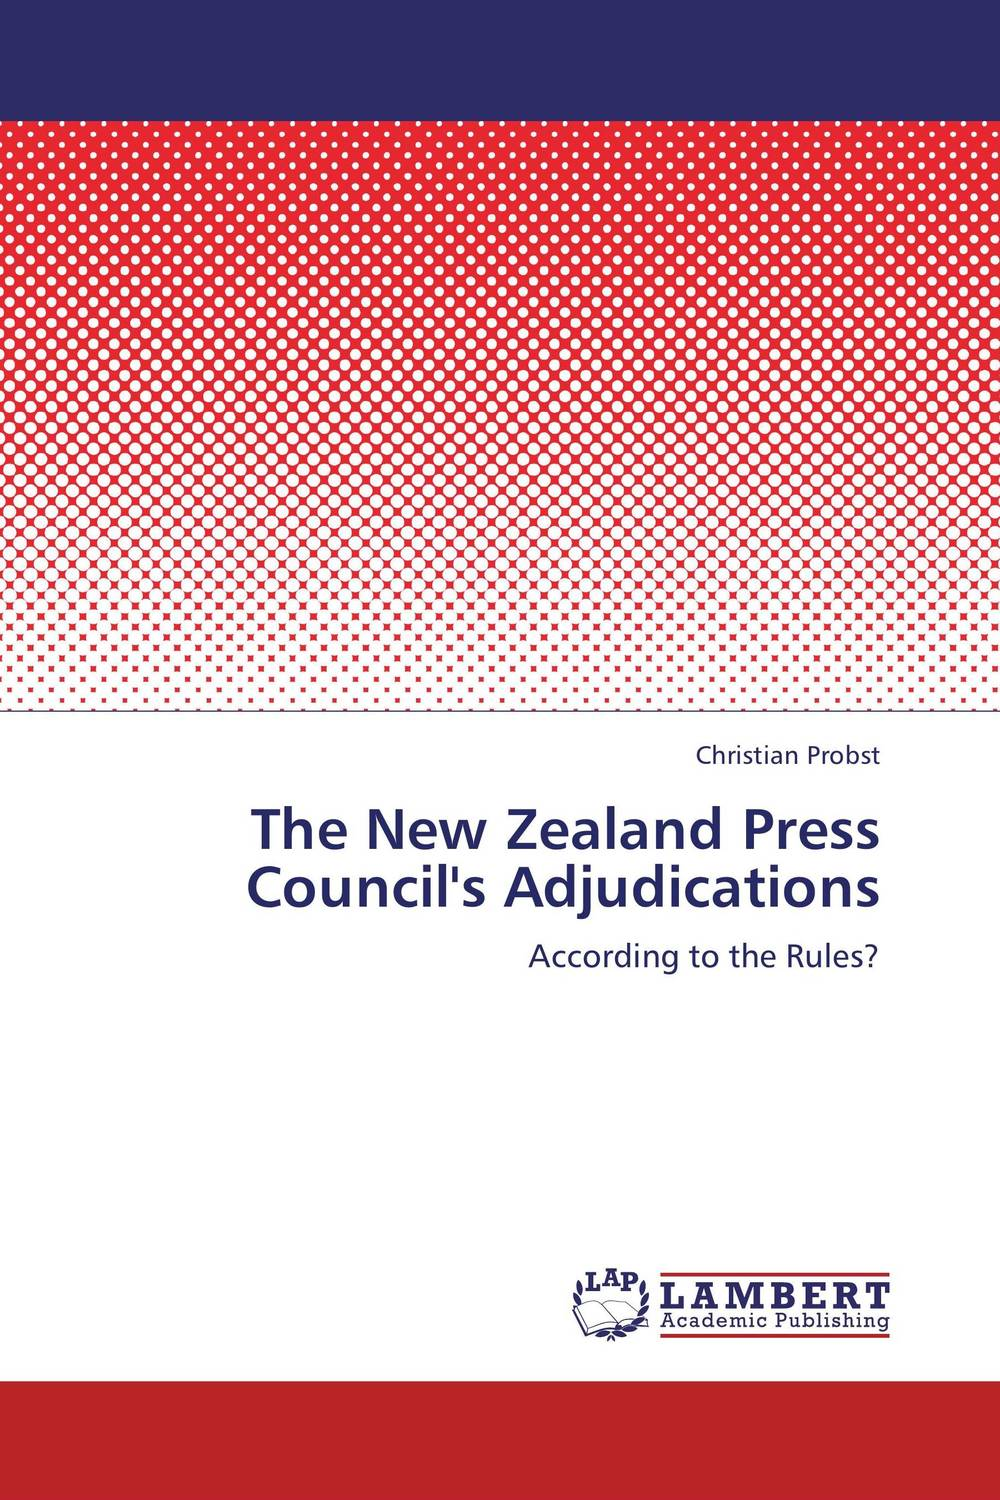 The New Zealand Press Council's Adjudications michael bunting extraordinary leadership in australia and new zealand the five practices that create great workplaces